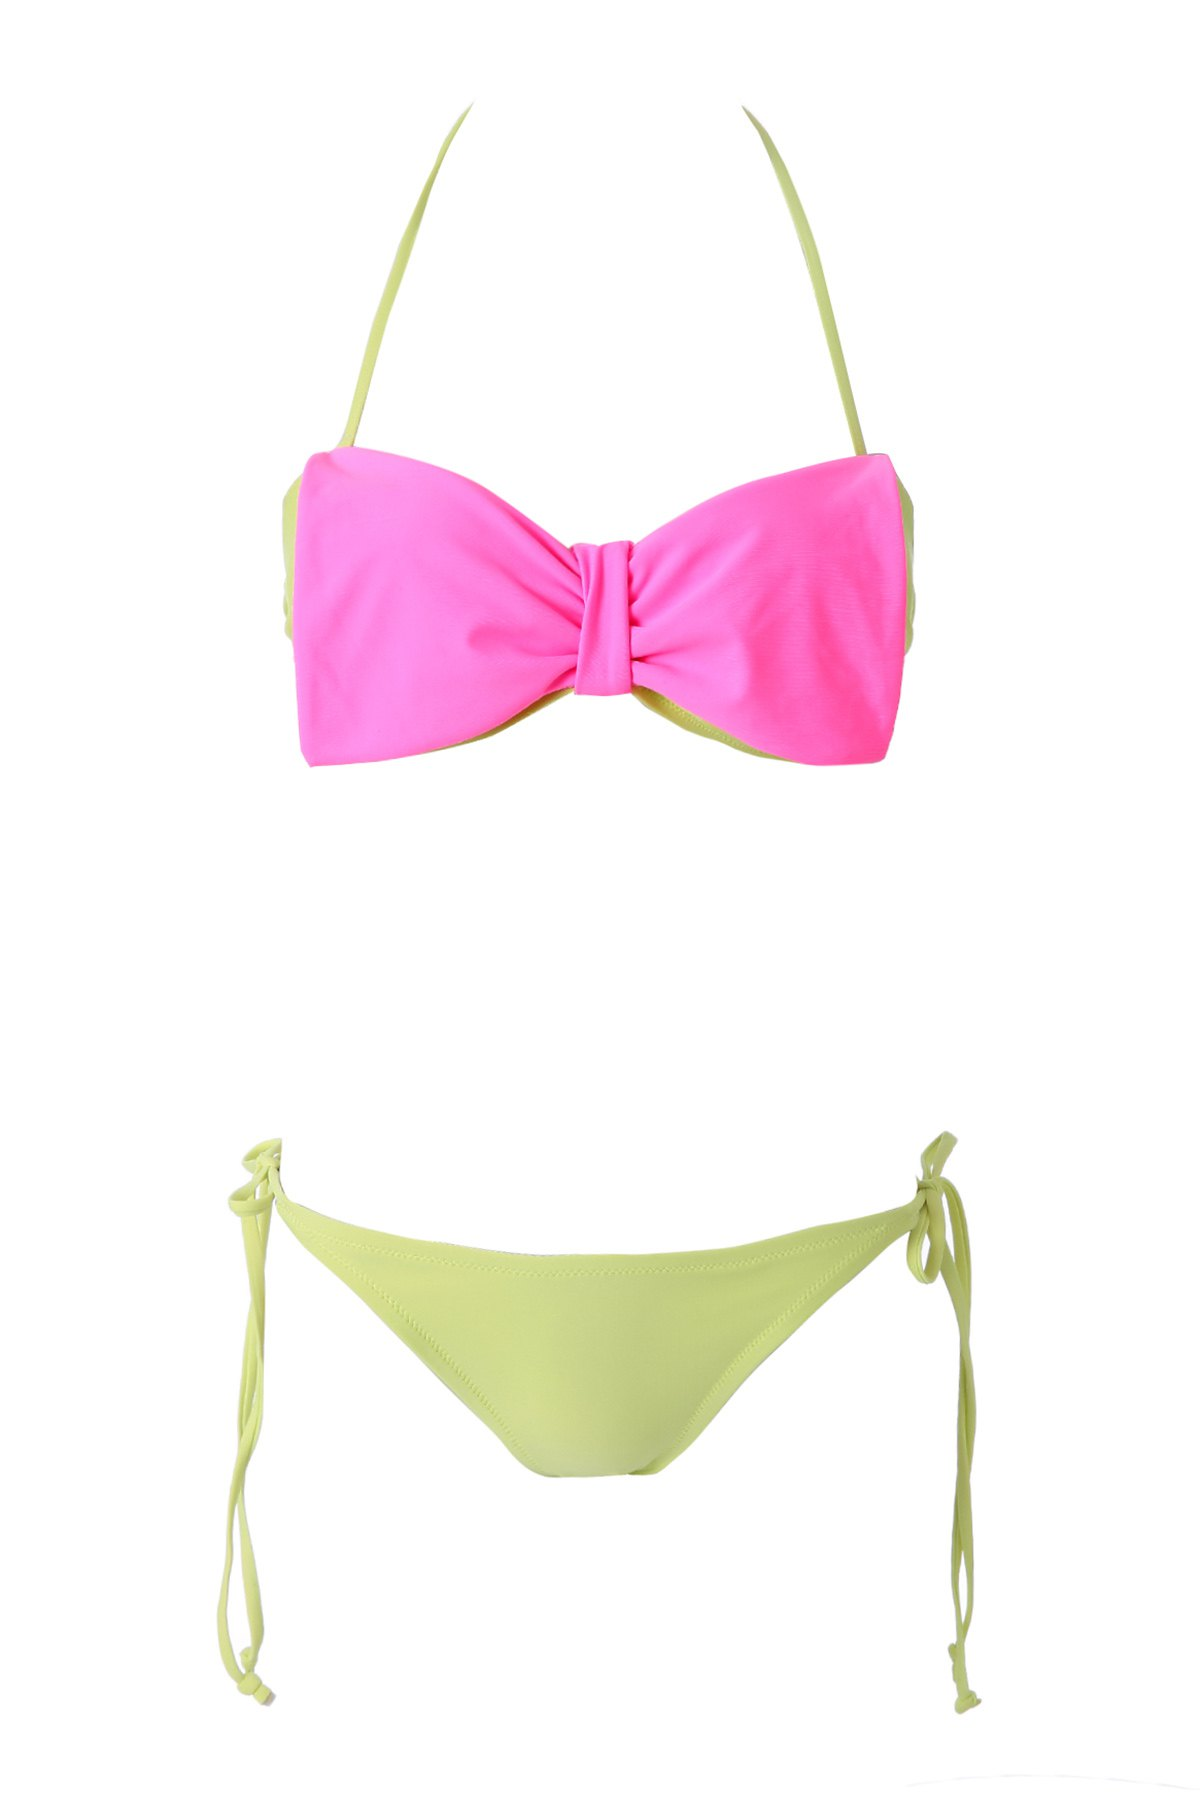 Bowknot Strapless Color Block Bikini Set - RED/GREEN S